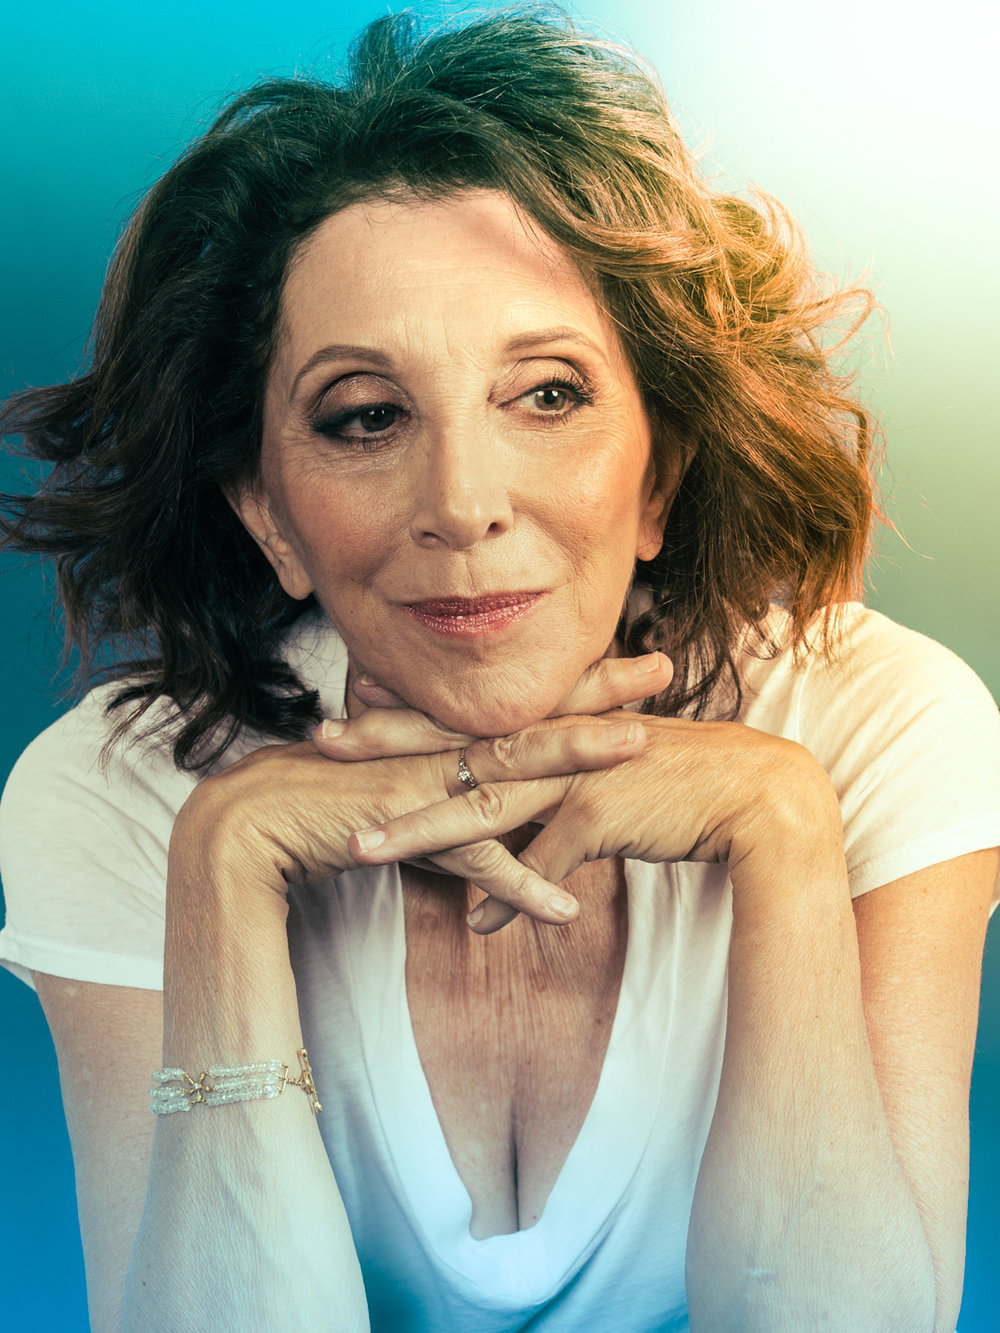 Andrea MArtin, Actor/ Comedians